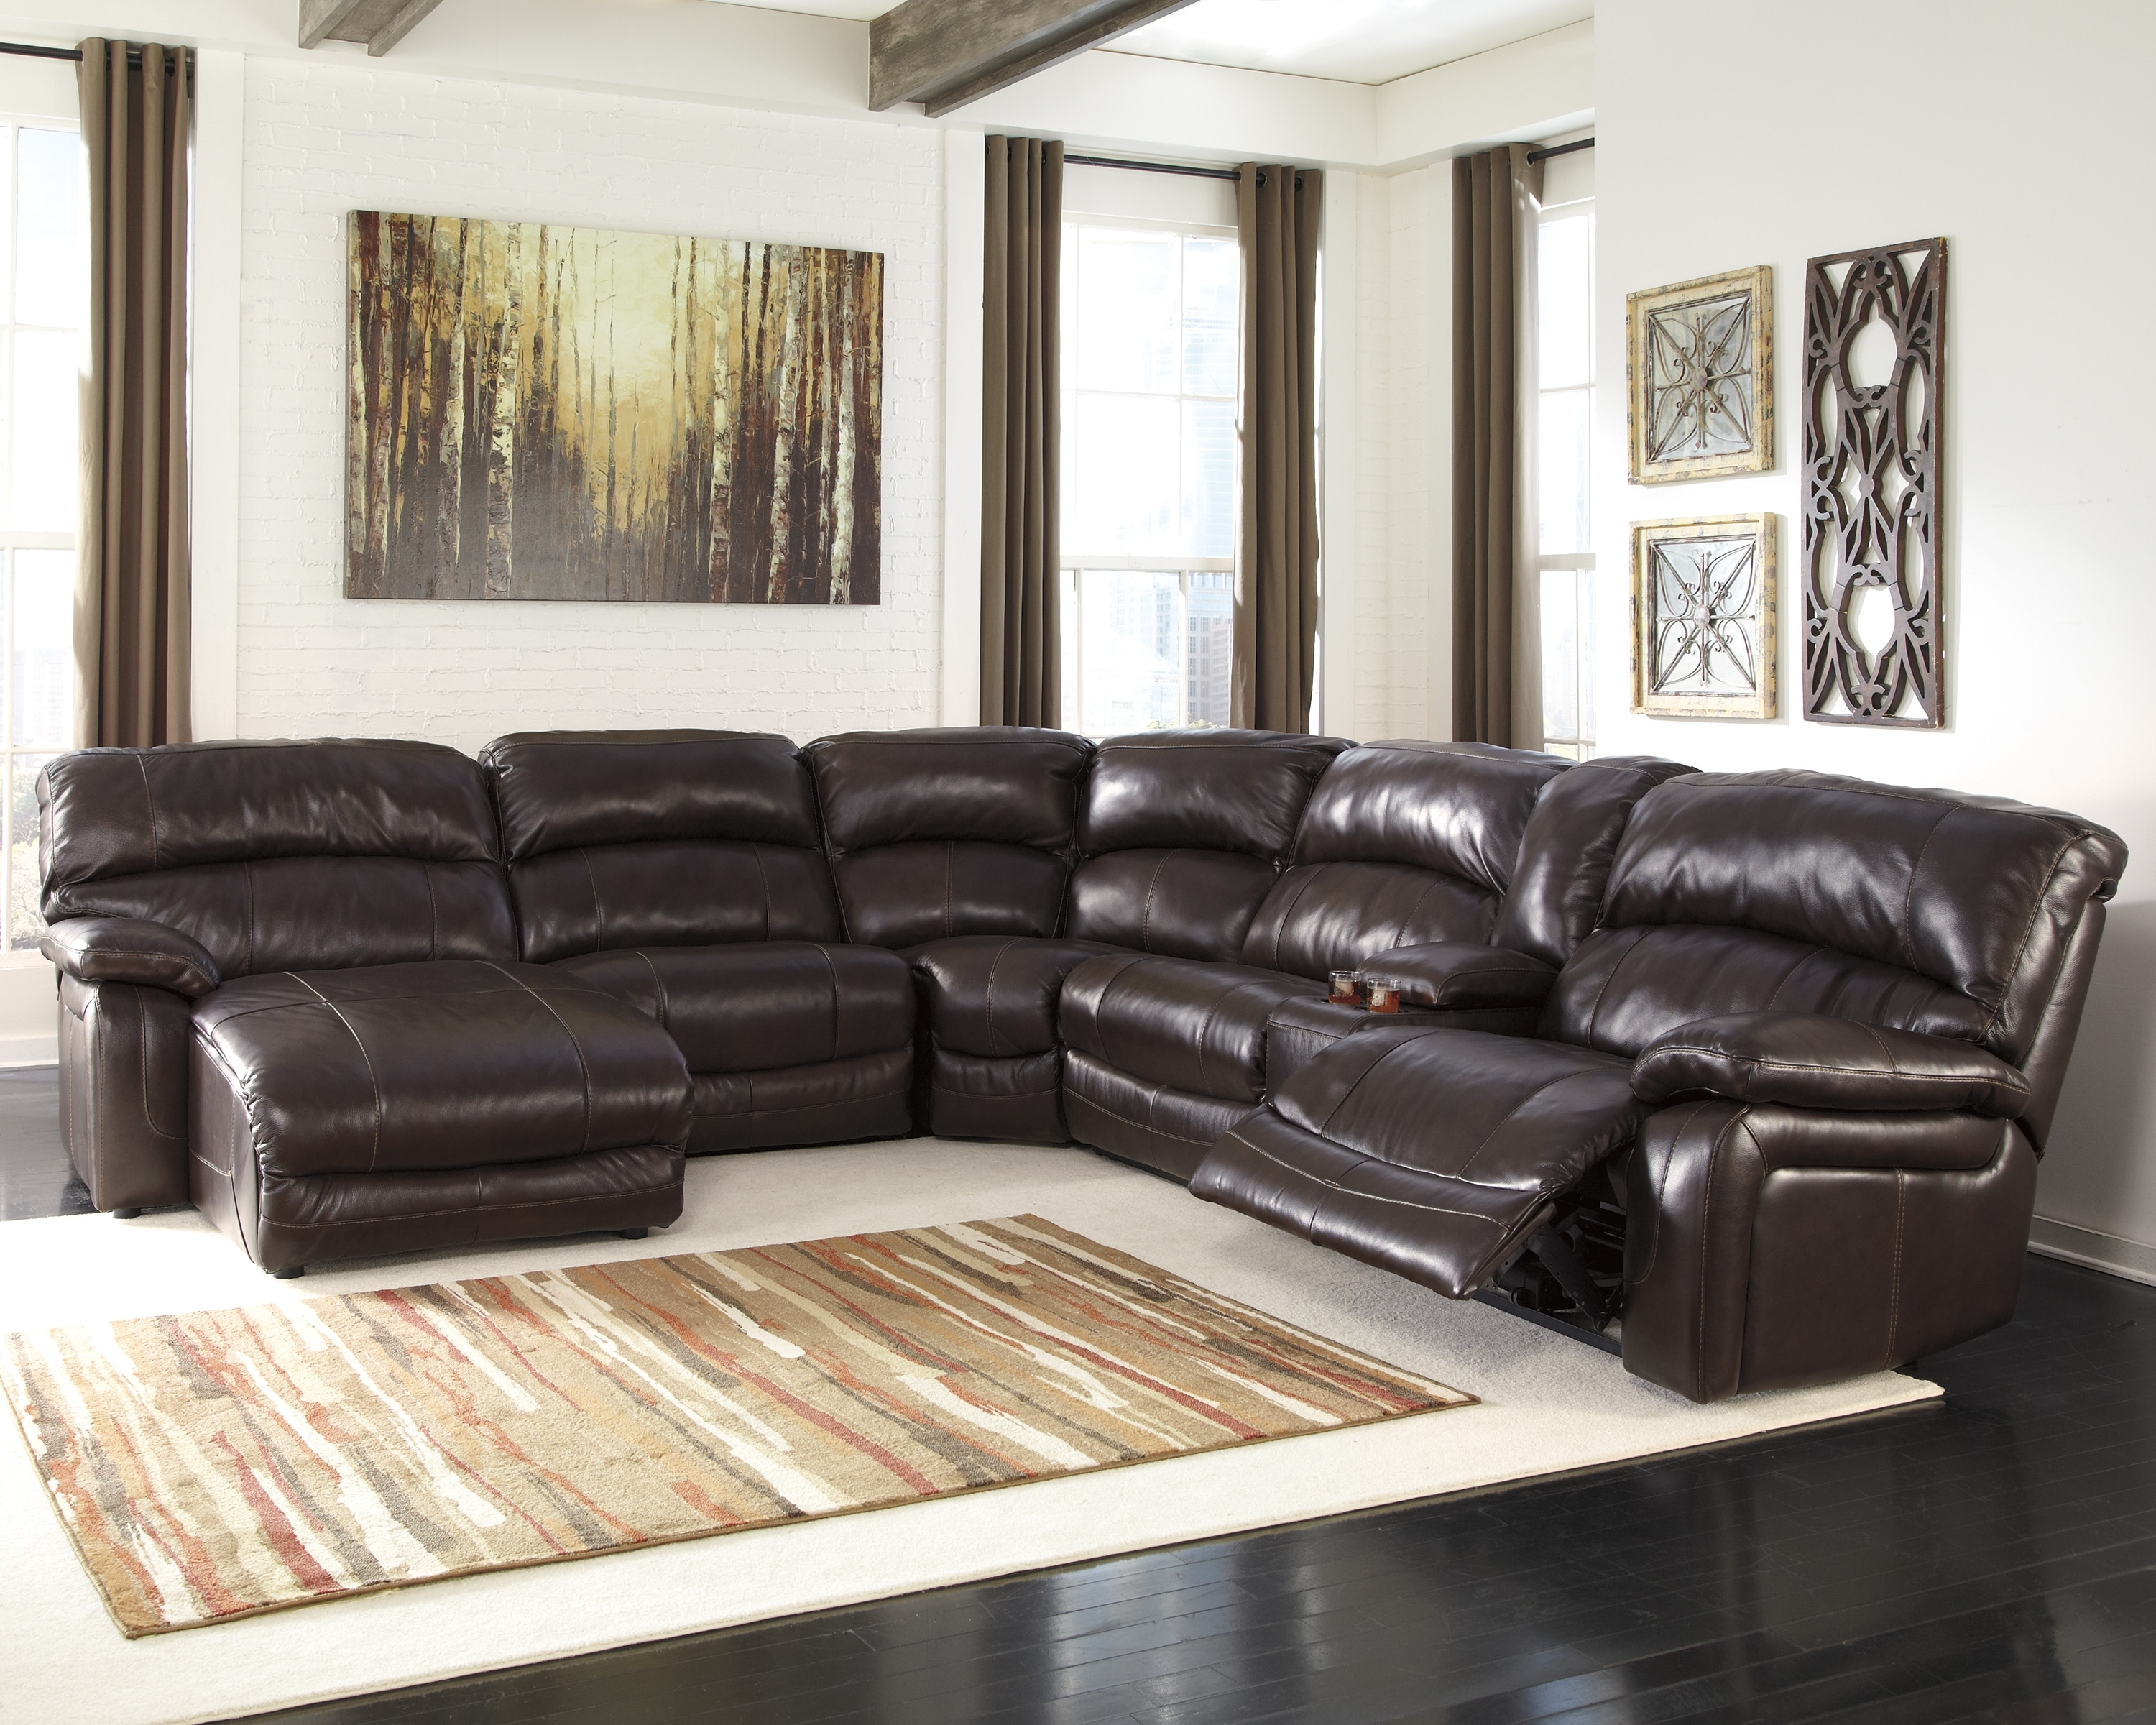 Cheap Sectional Inside Most Up To Date Sectional Sofas At Raymour And Flanigan (View 14 of 20)